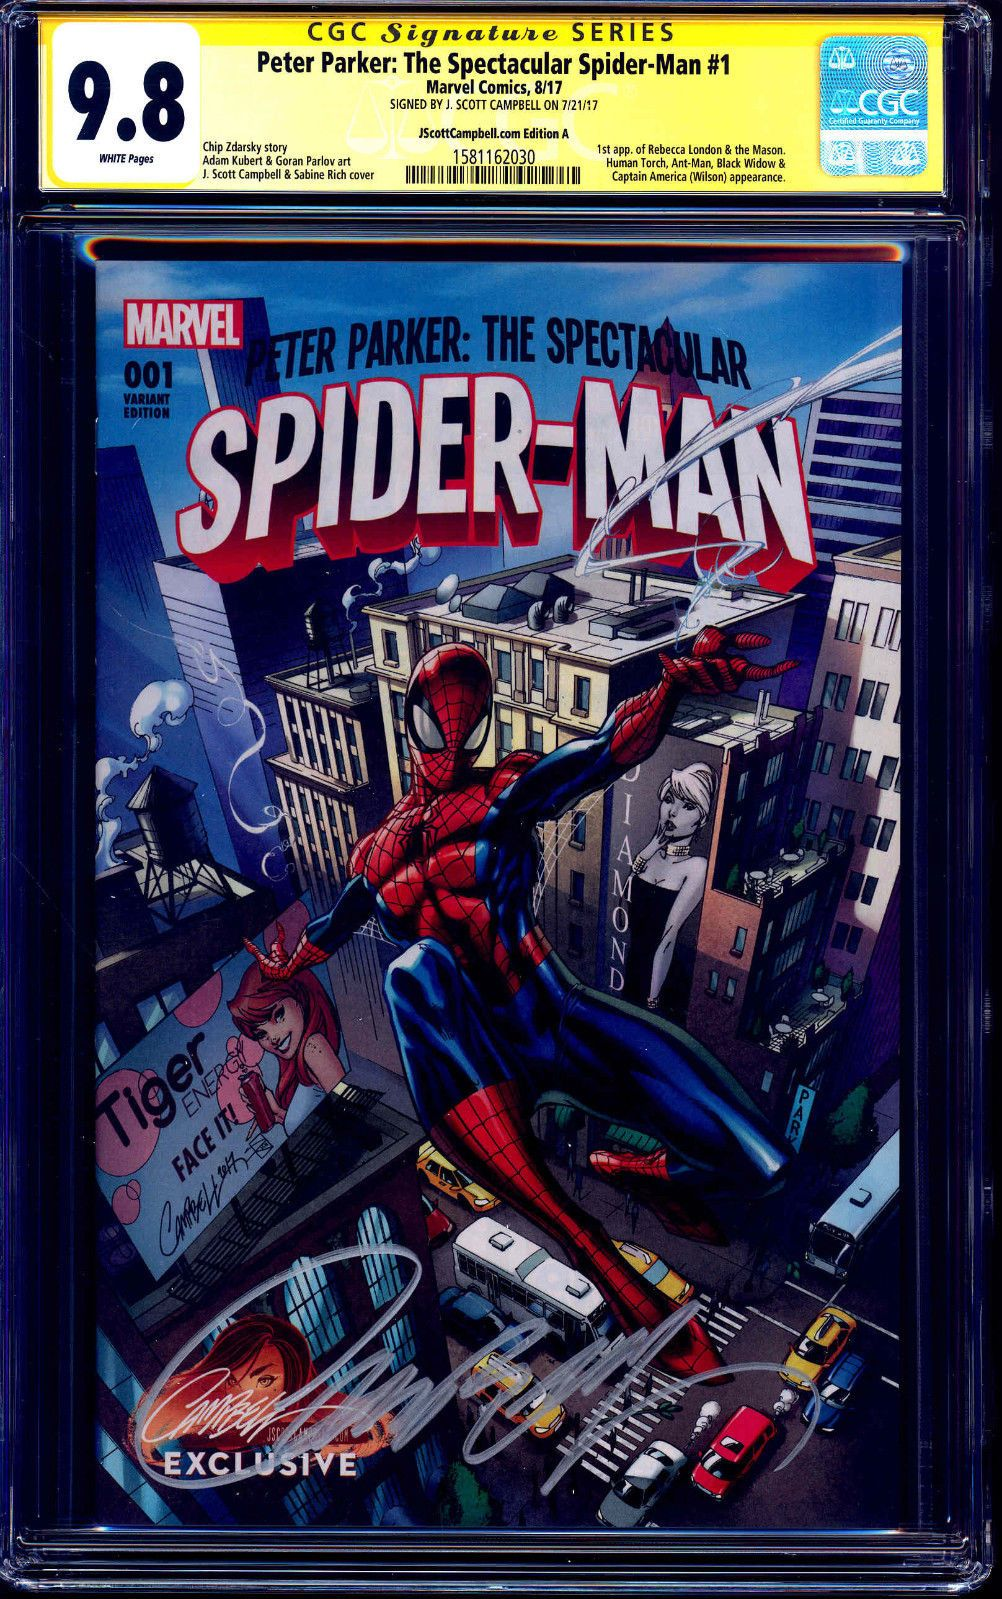 #certified #graded #cgc #cpgx #art #DC #Marvel #comic Peter Parker Spectacular Spider-Man #1 VARIANT CGC SS 9.8 signed JSCOTT CAMPBELL